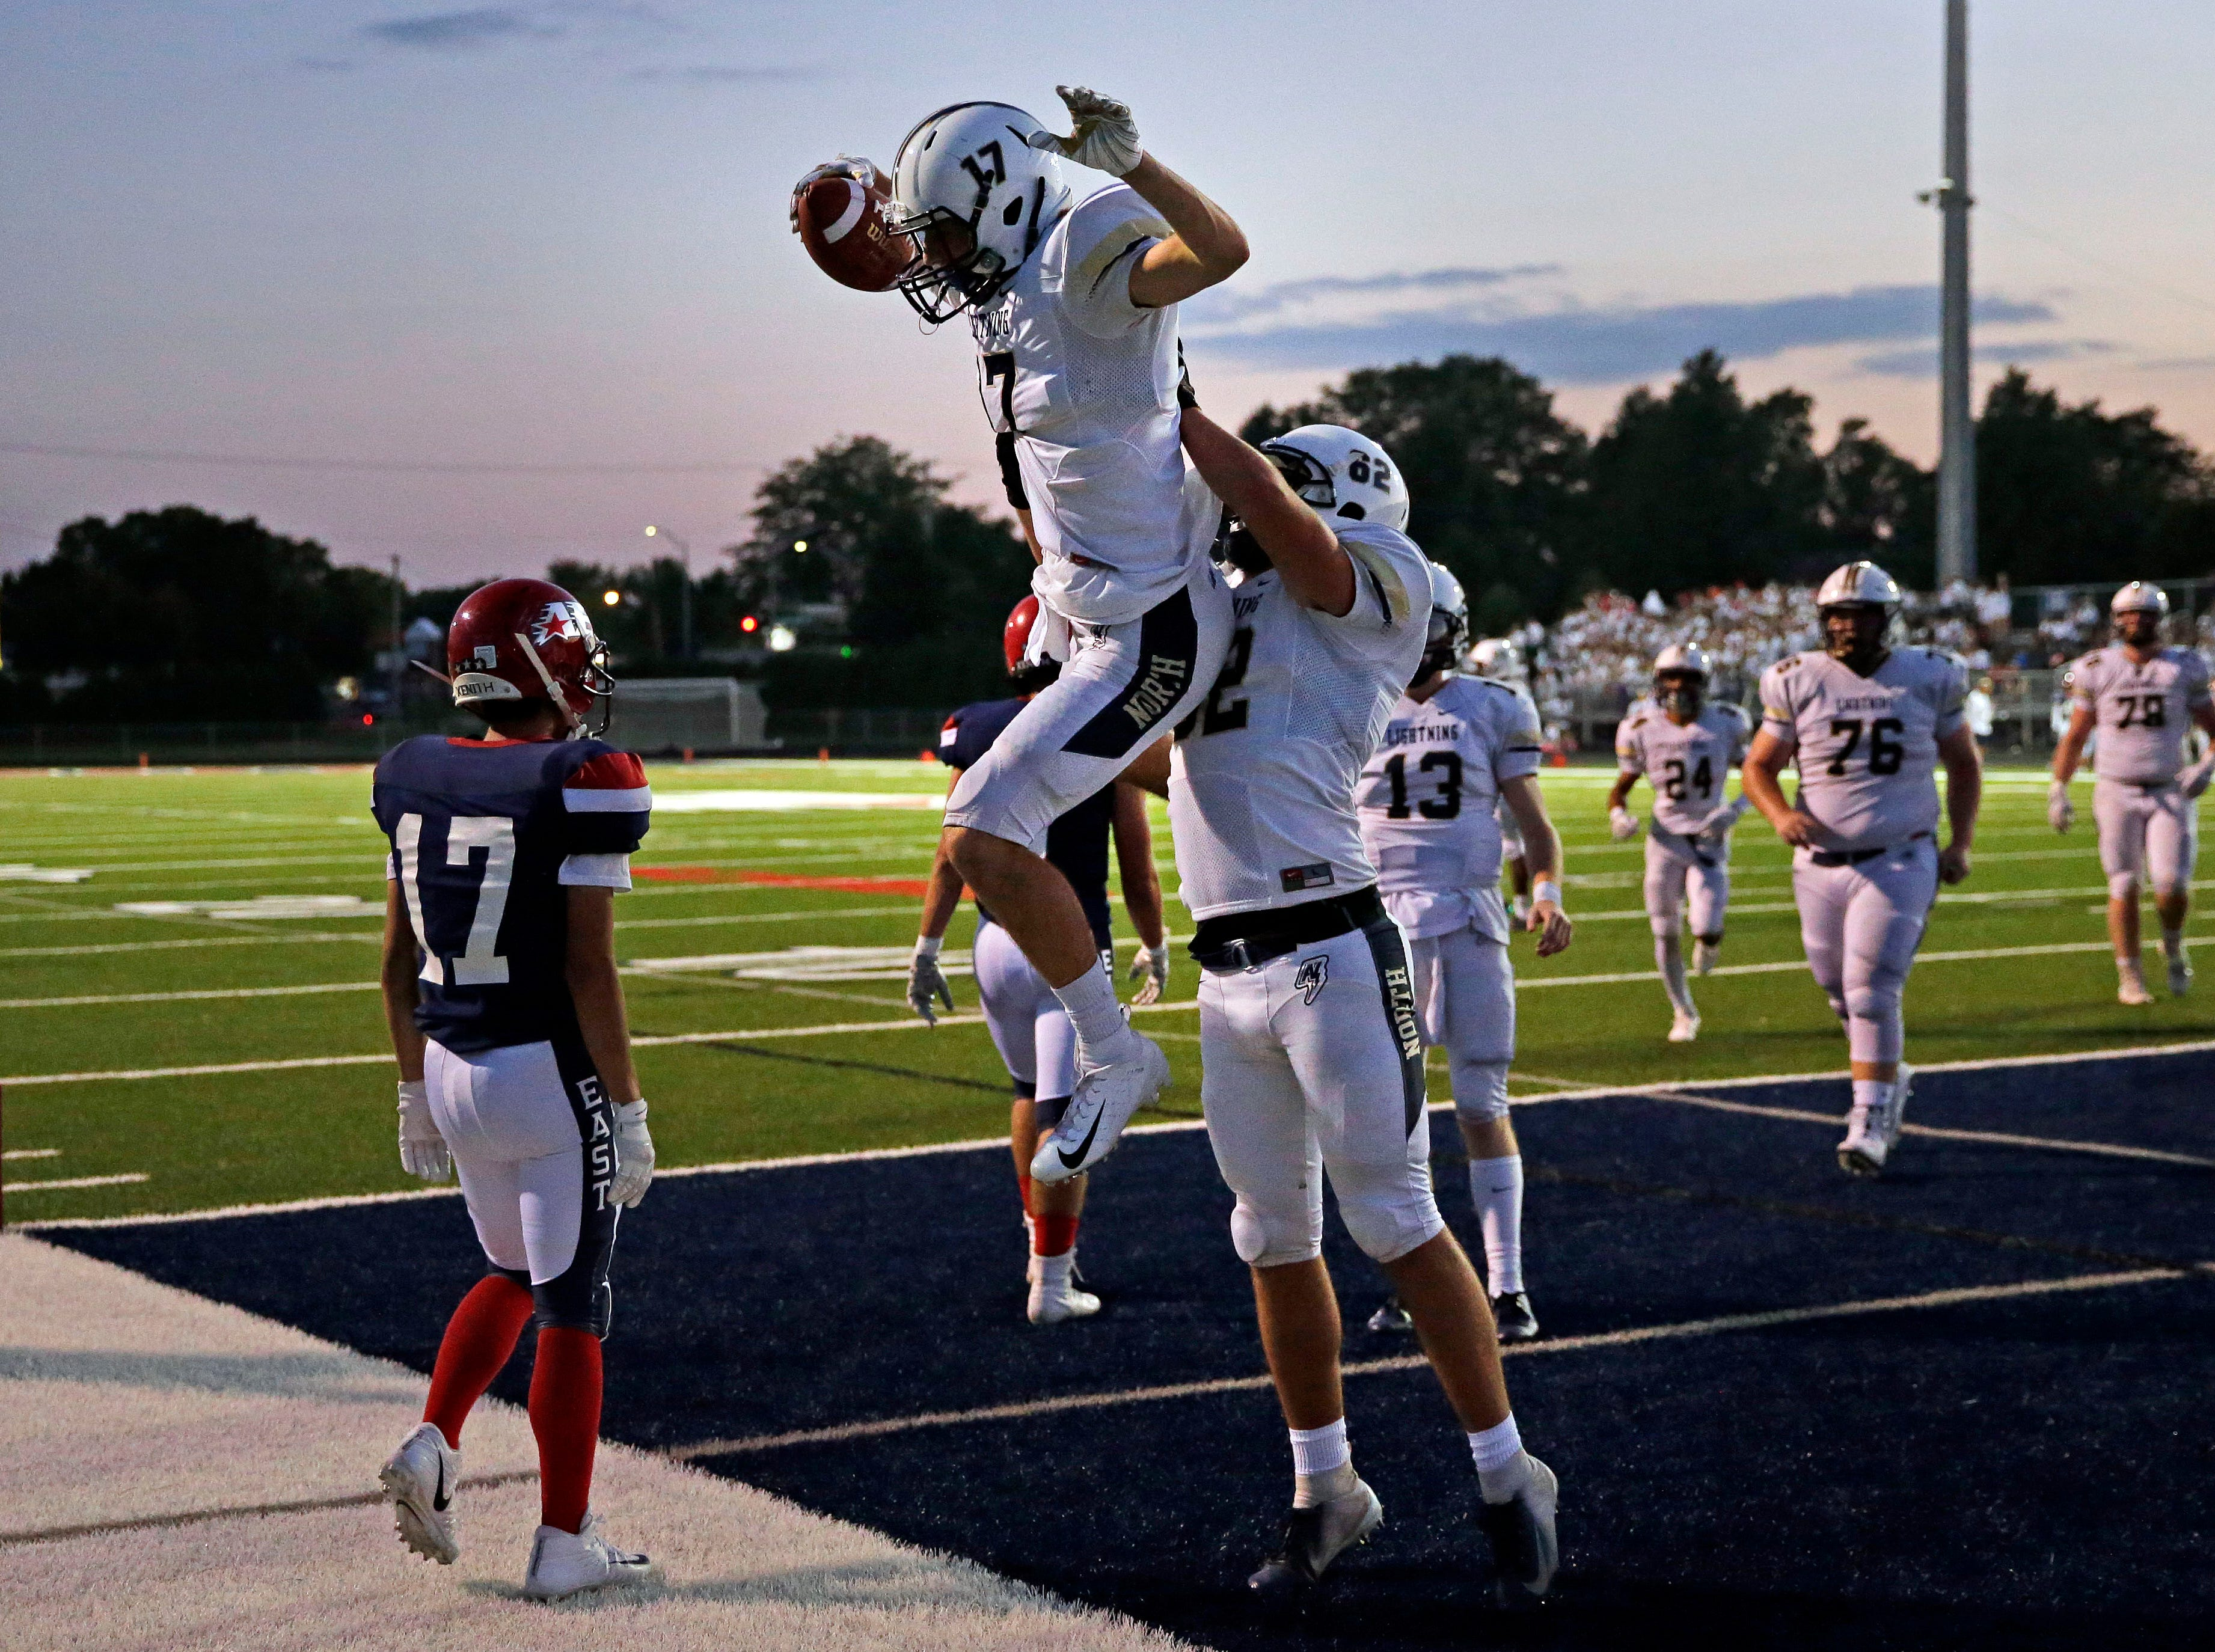 Kyle Hammen (17) and Gavin Krause of Appleton North celebrate a touchdown over Appleton East in a Valley Football Association game Friday, September 14, 2018, at Appleton East High School in Appleton, Wis.Ron Page/USA TODAY NETWORK-Wisconsin